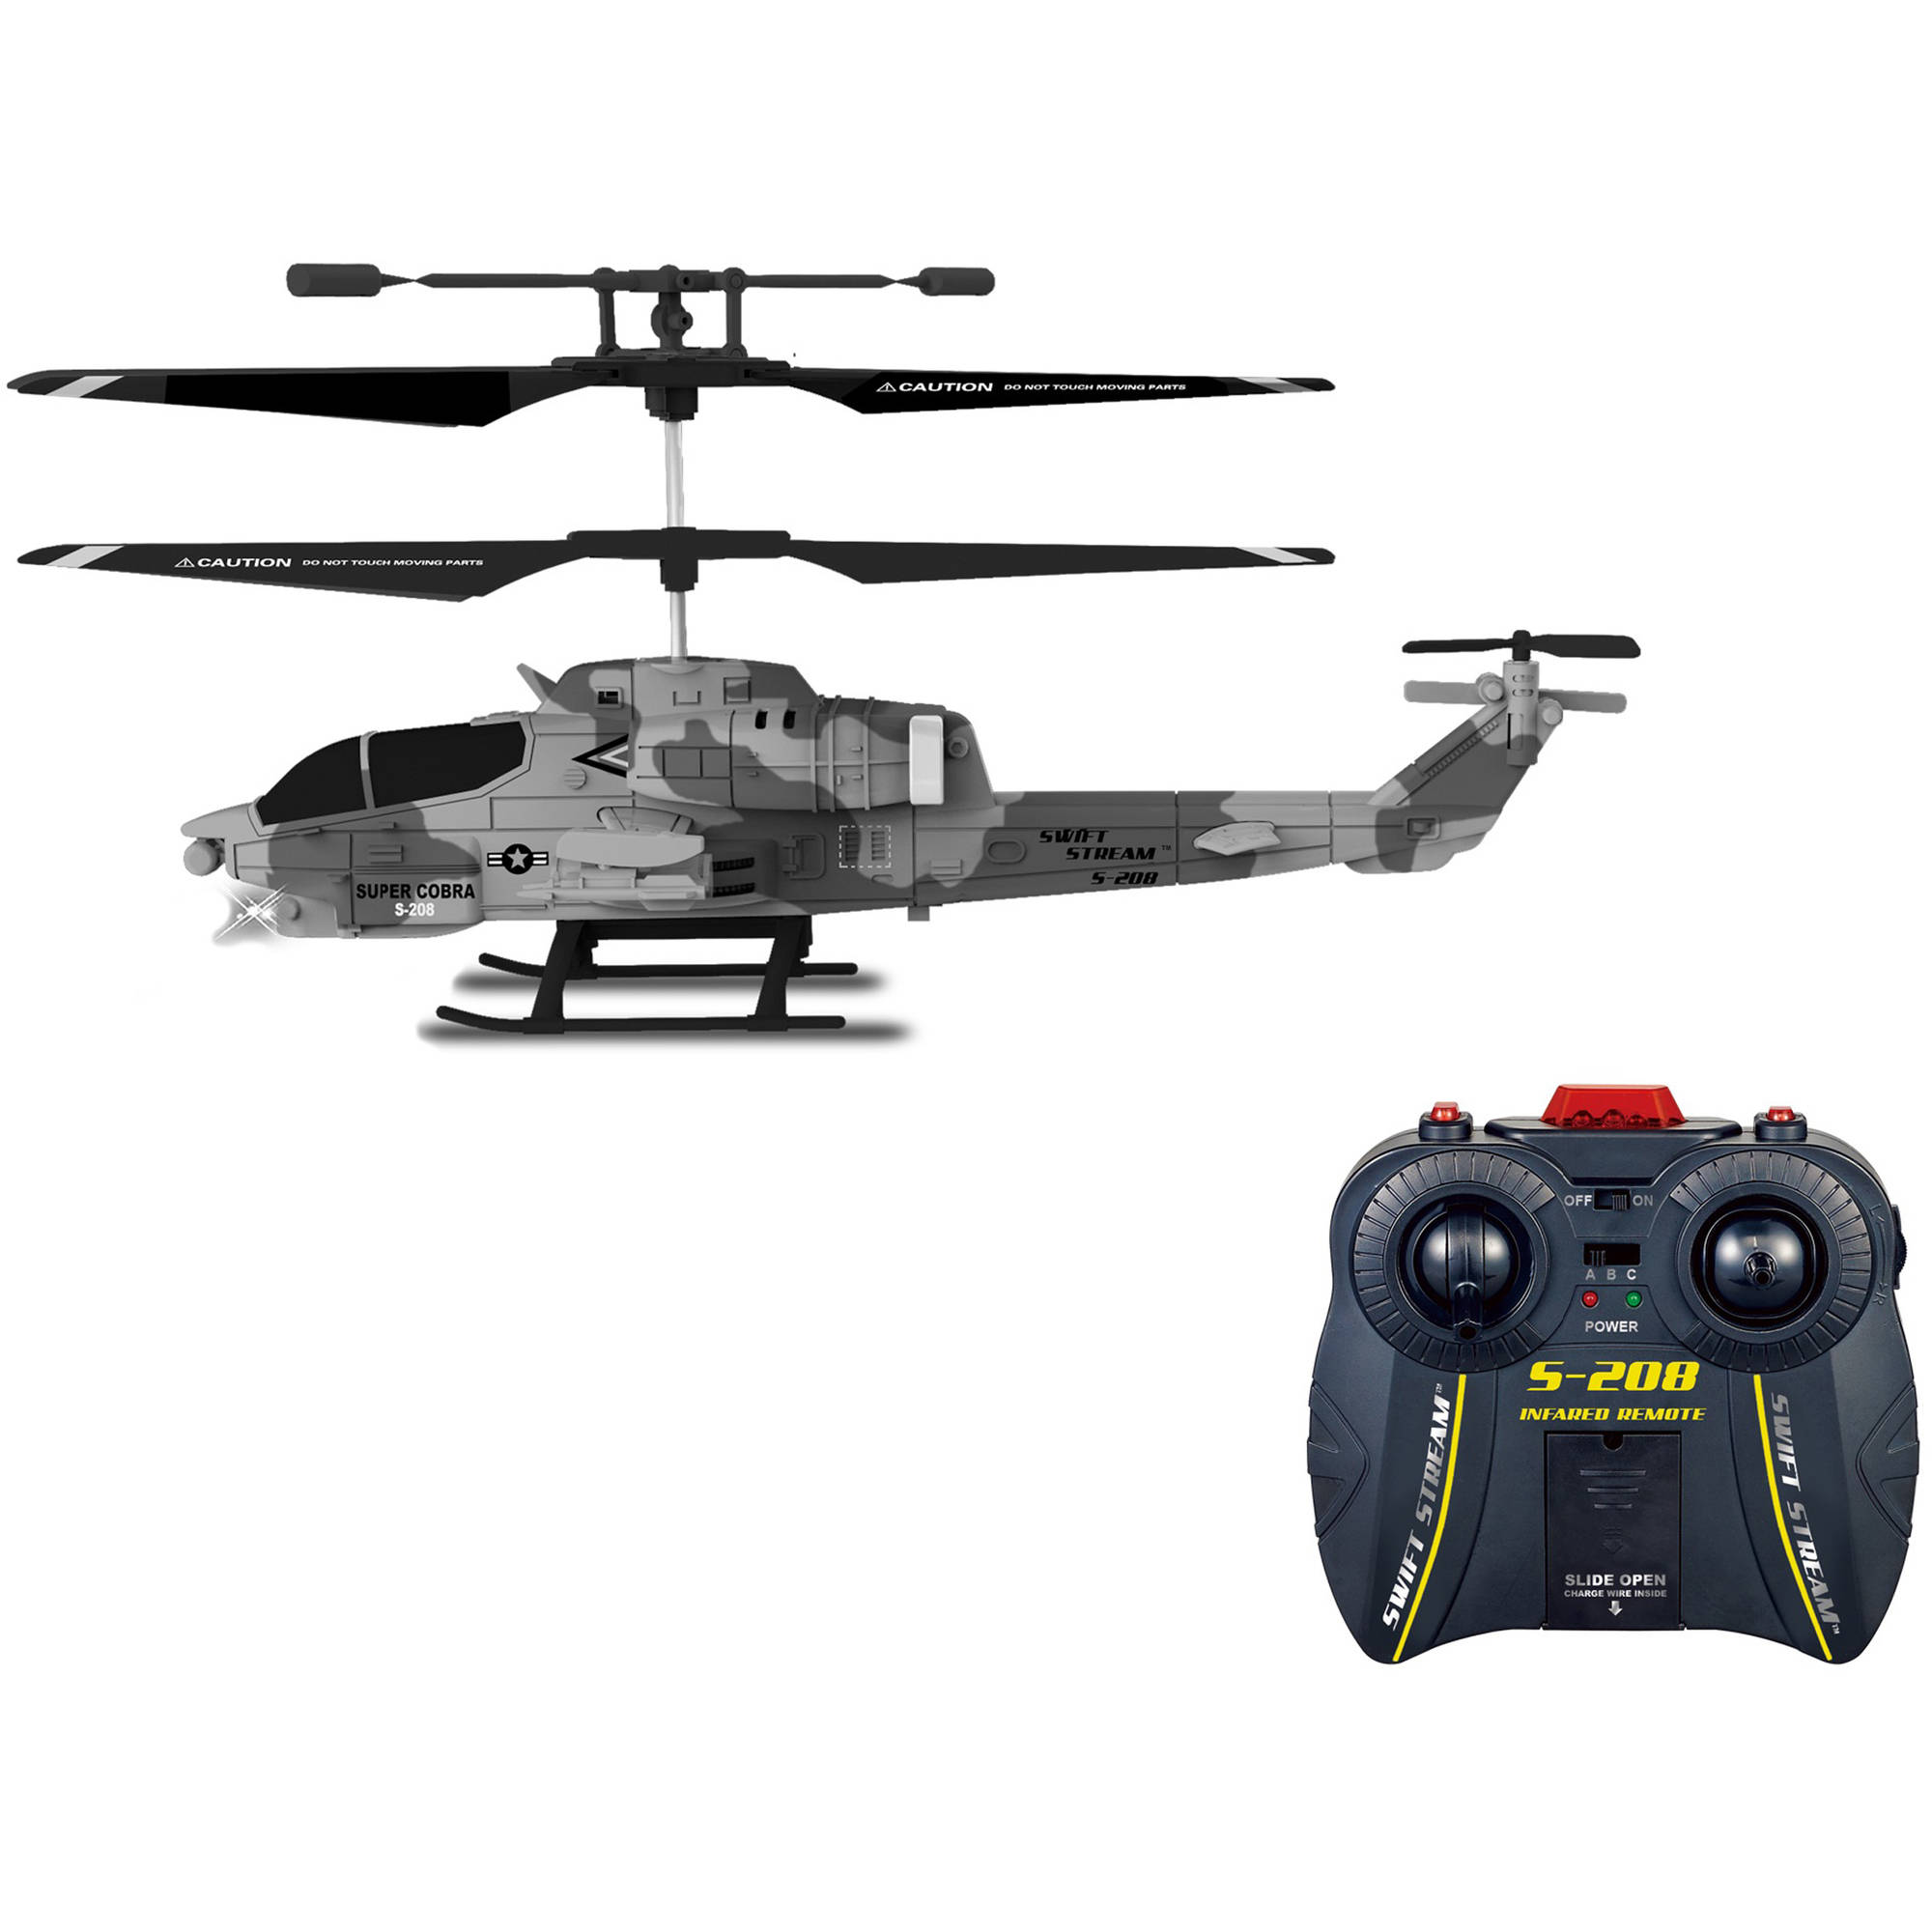 3.5 channel rc helicopter instructions